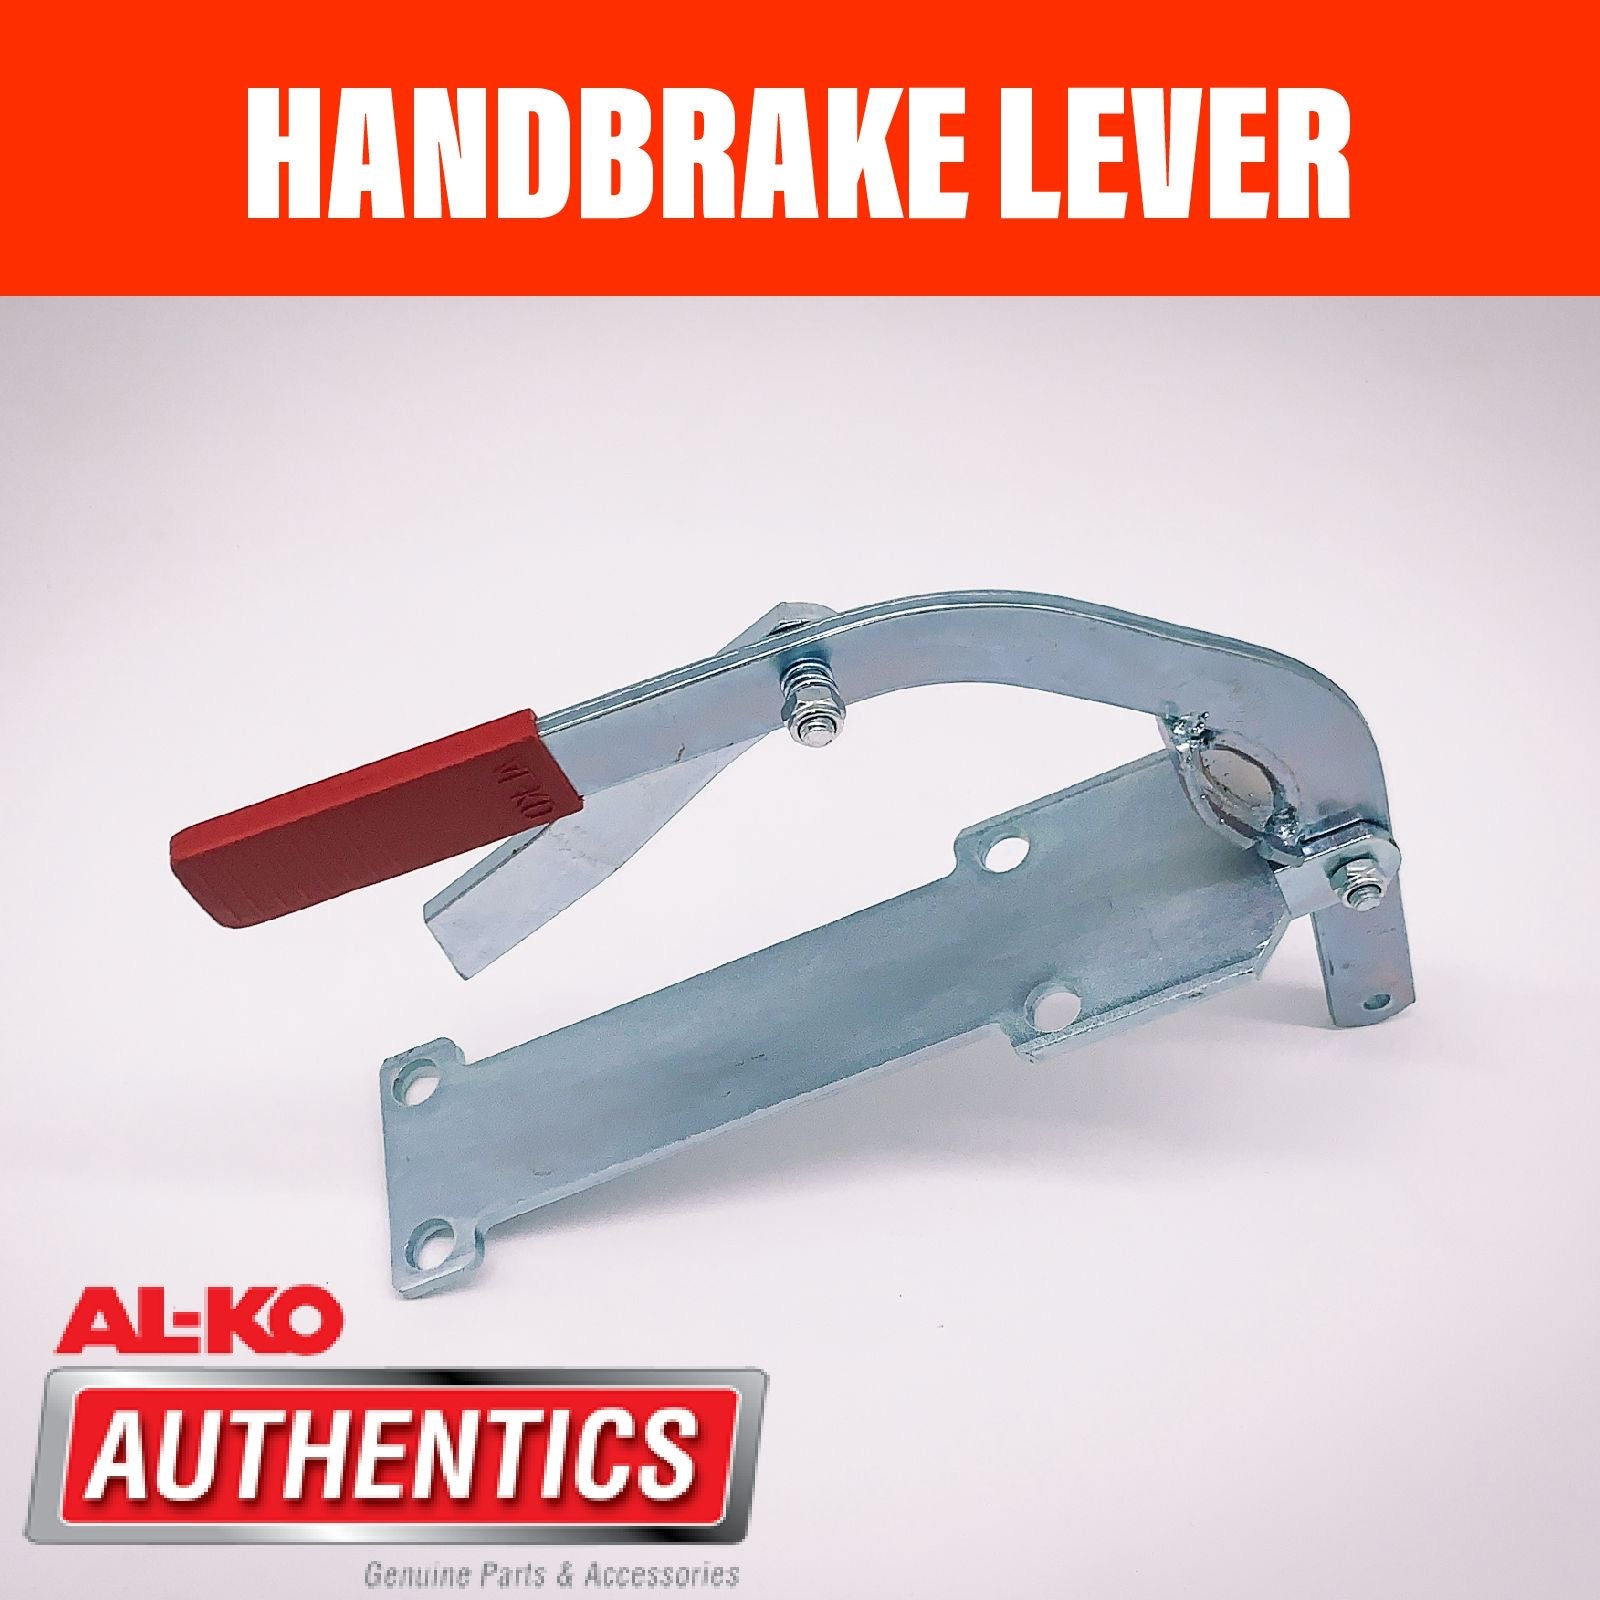 AL-KO Mechanical Handbrake Lever